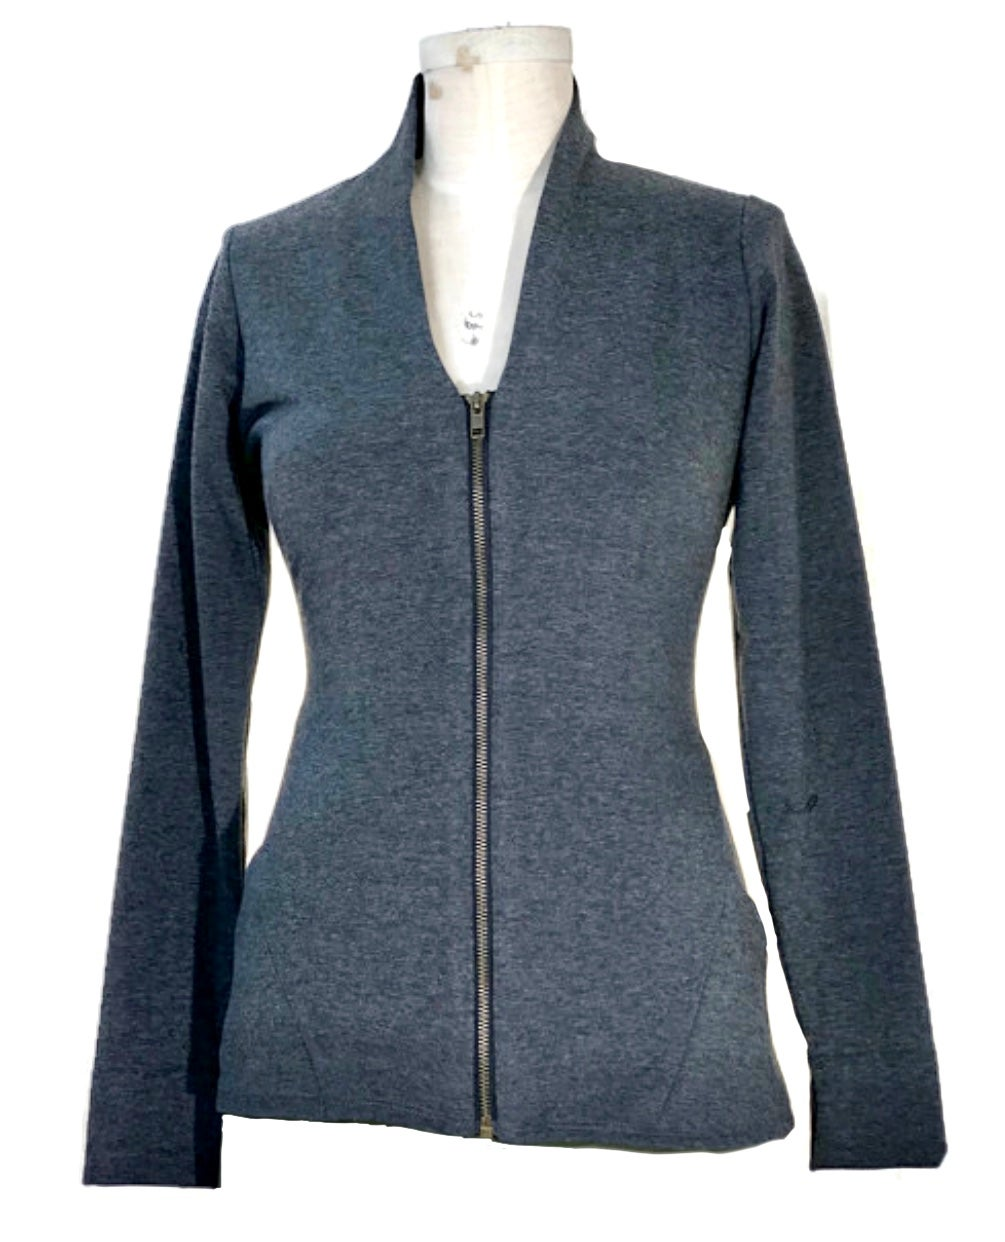 Image of Euclidean jacket in charcoal